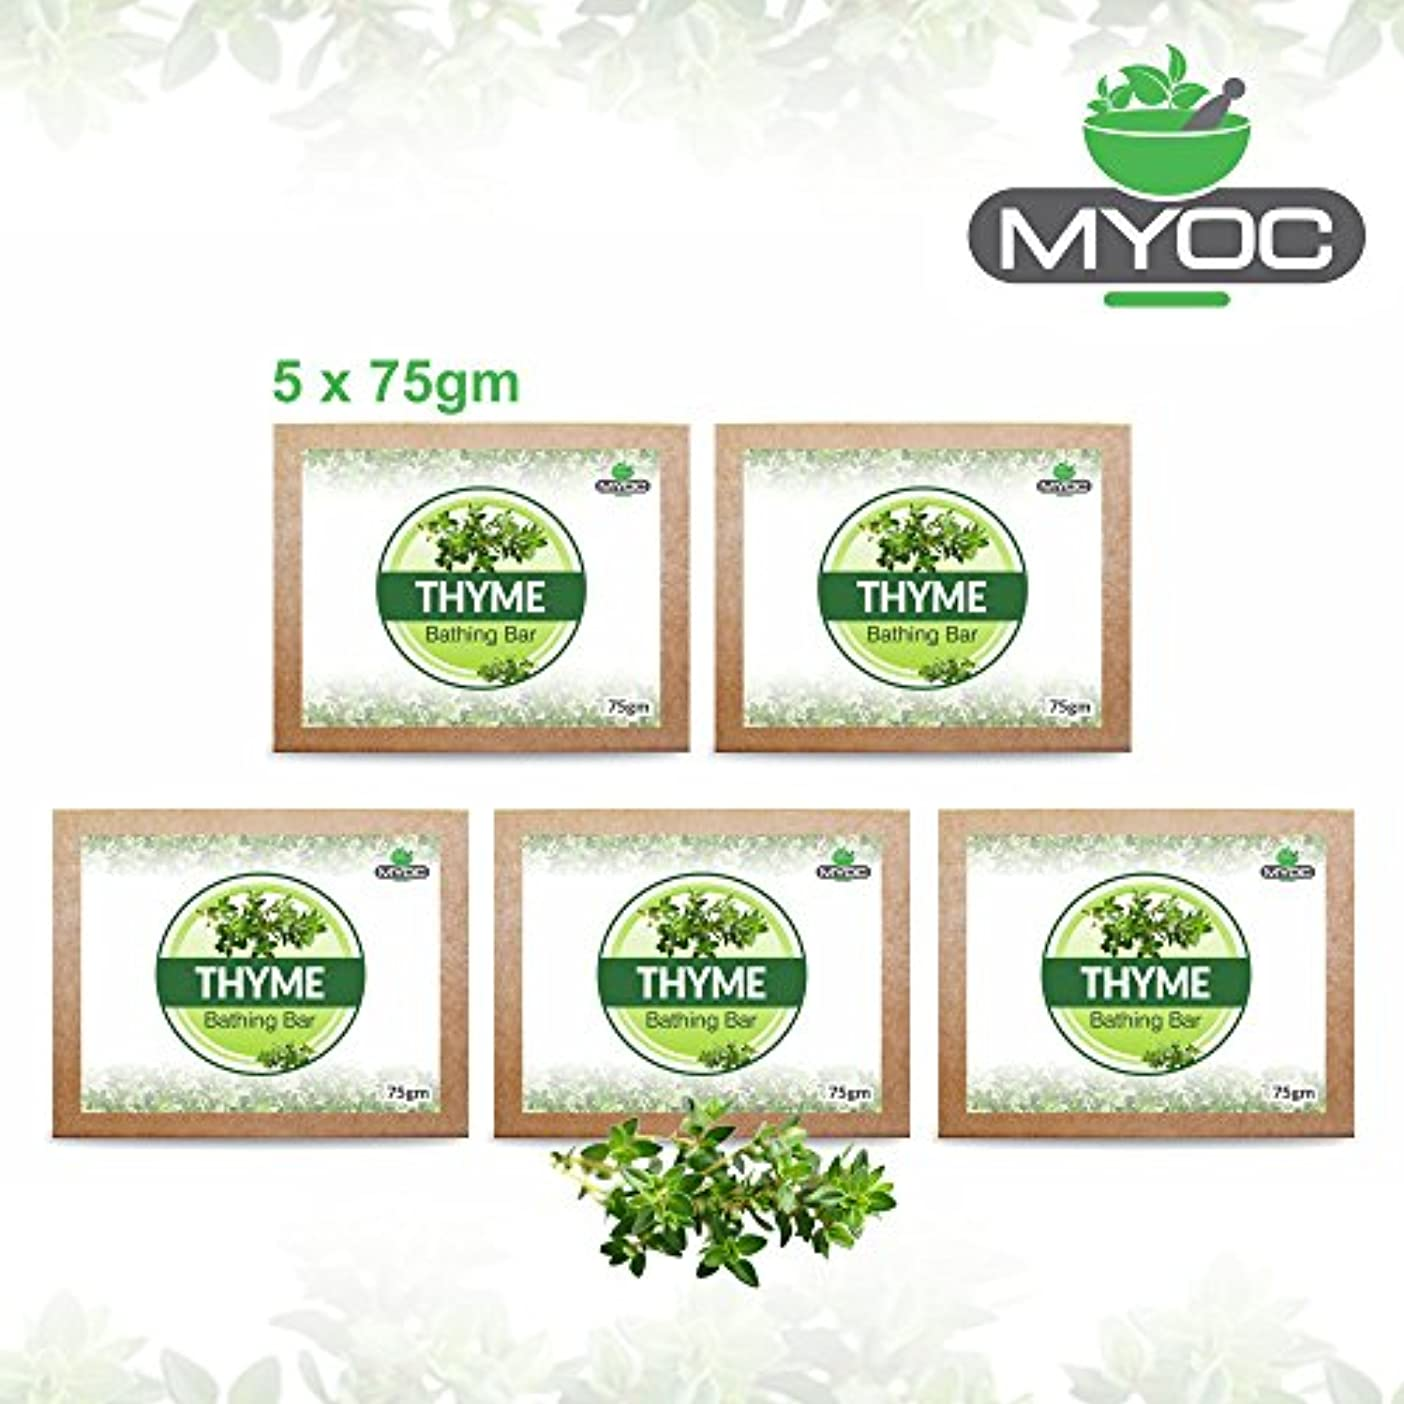 Thyme Oil And Vitamin E Soap For bad odour, acne free and athletes foot 75g x 5 Pack